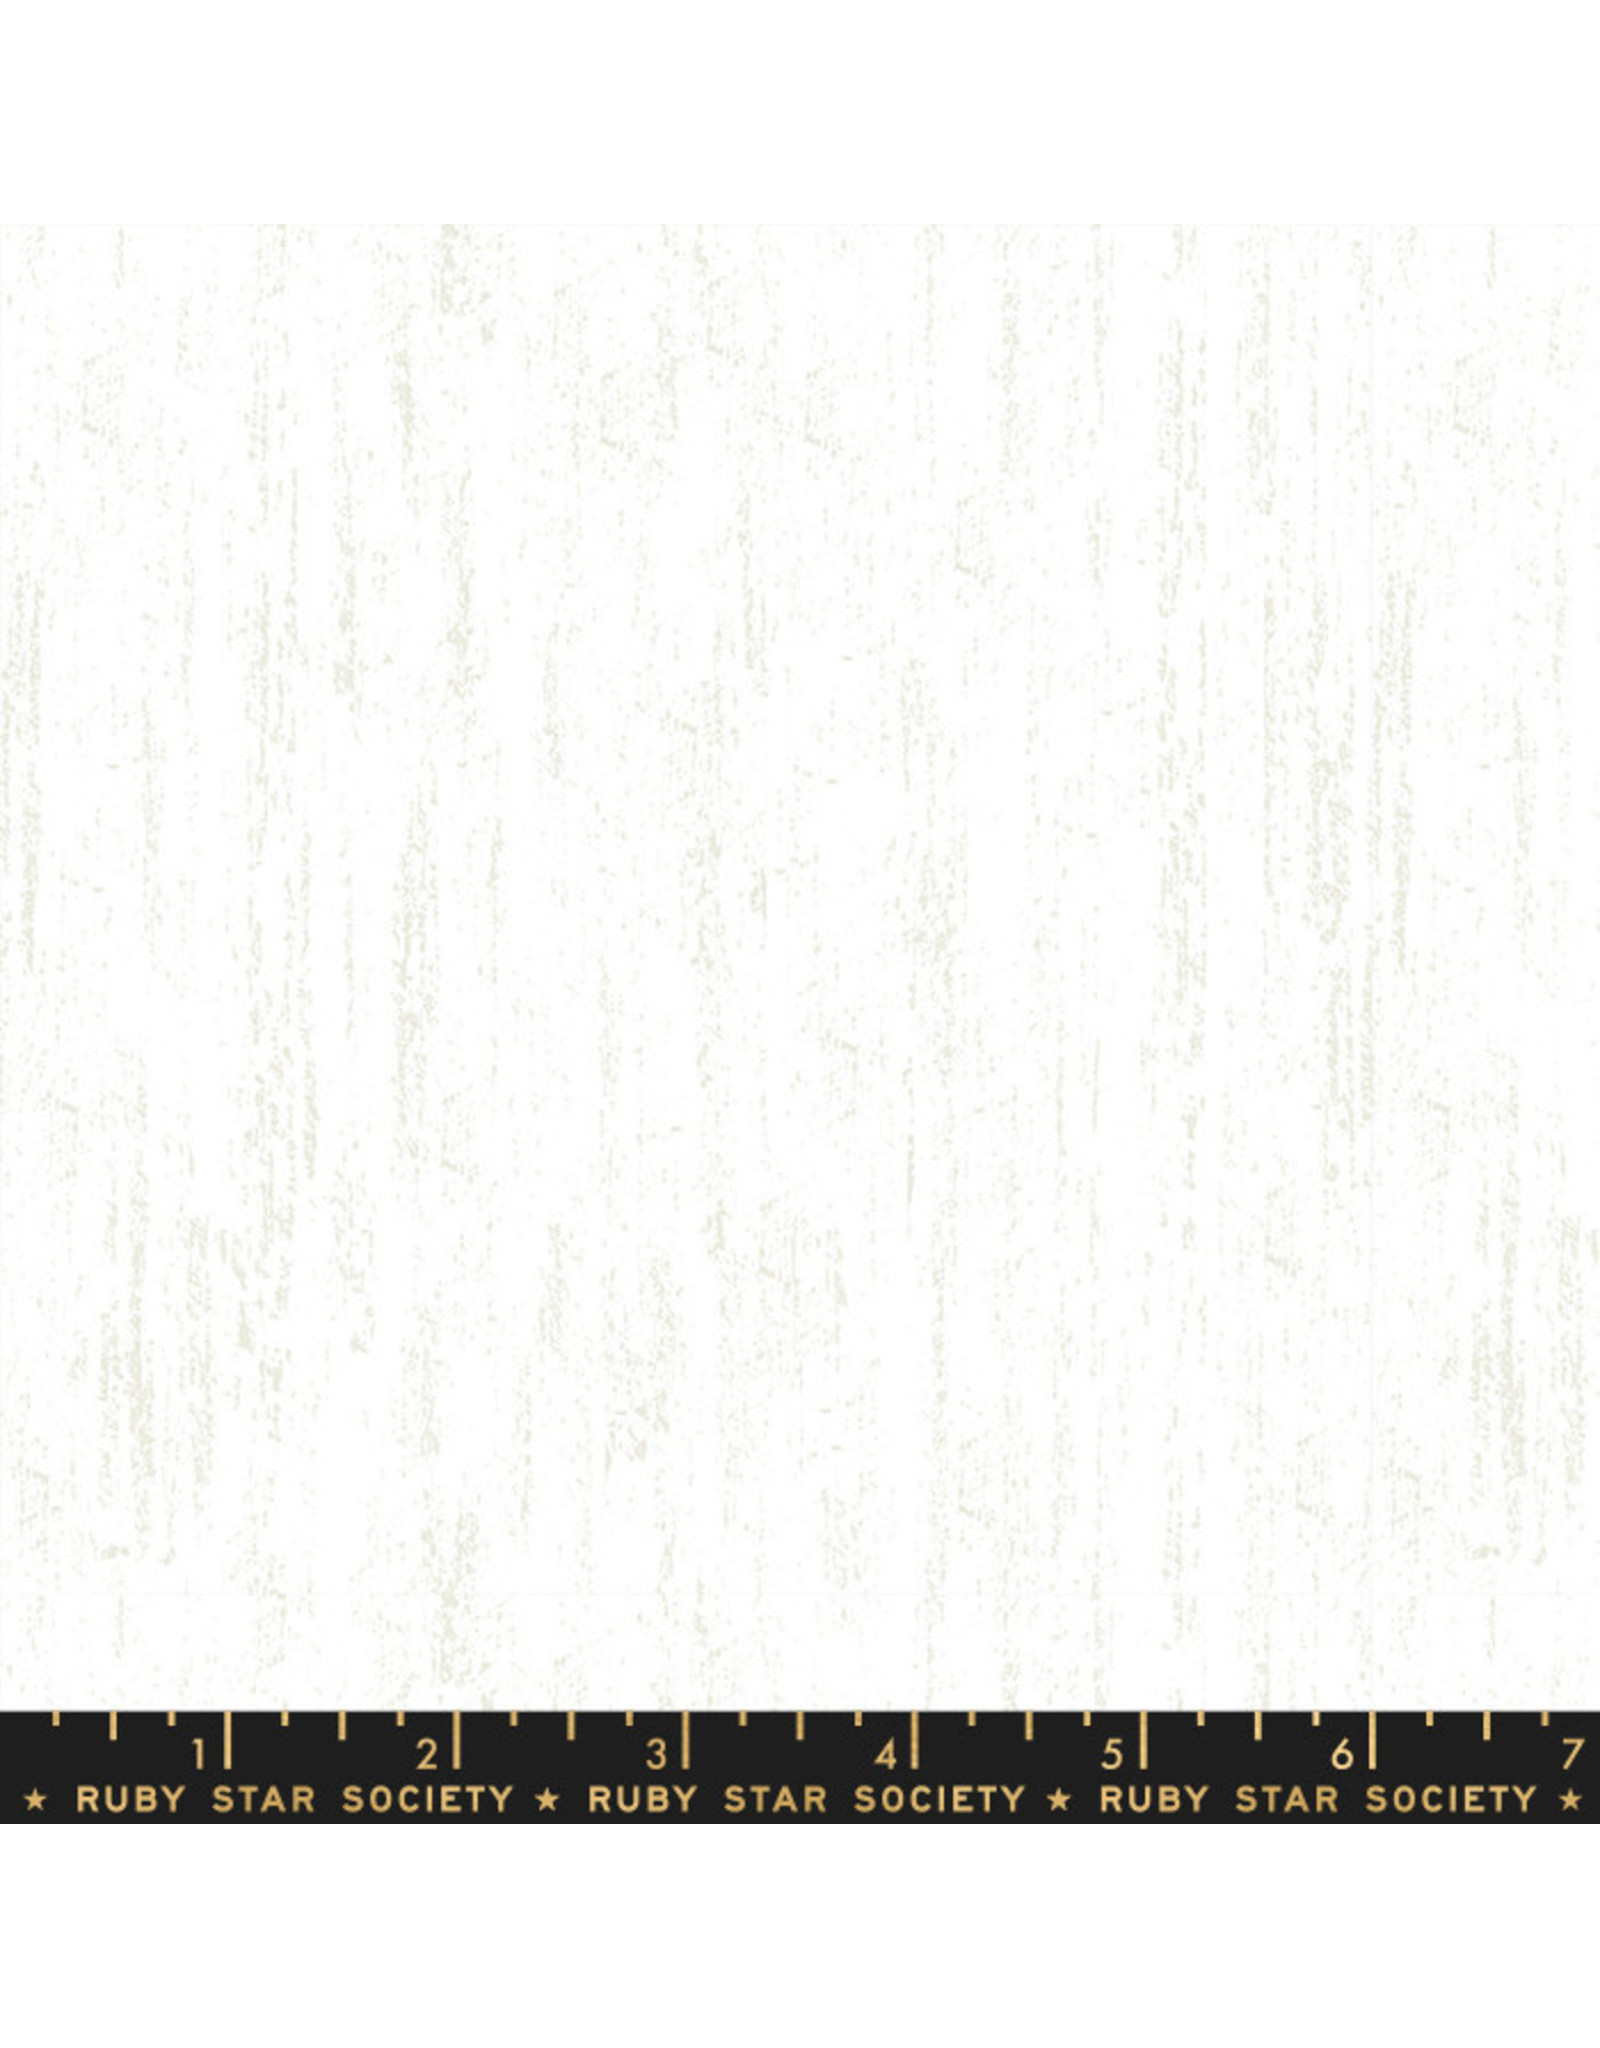 Ruby Star Society Brushed - White coupon (± 23 x 110 cm)